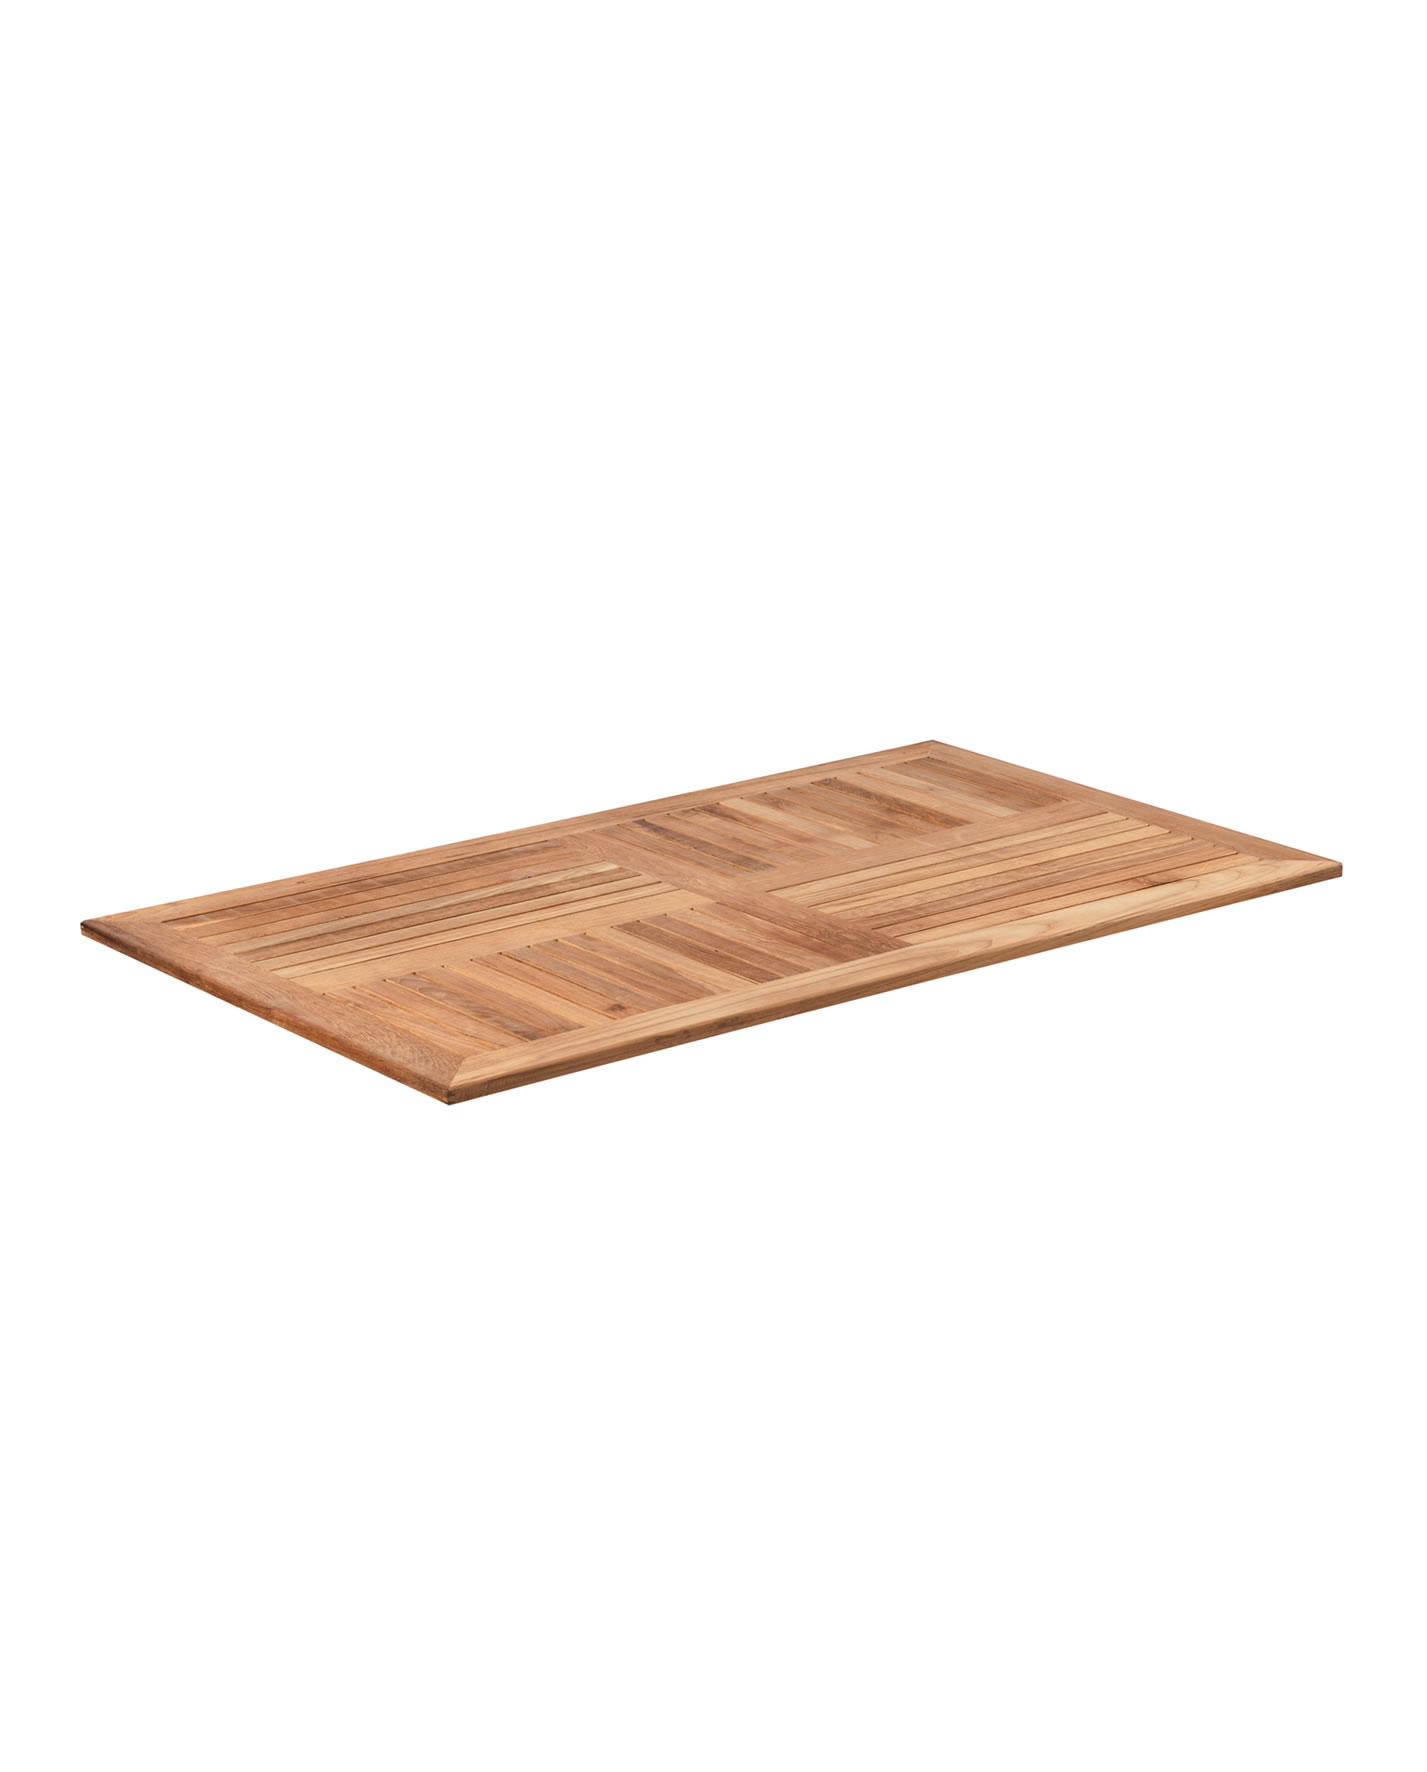 Teak 1400x700mm Rectangular Table Top - Forest Contract